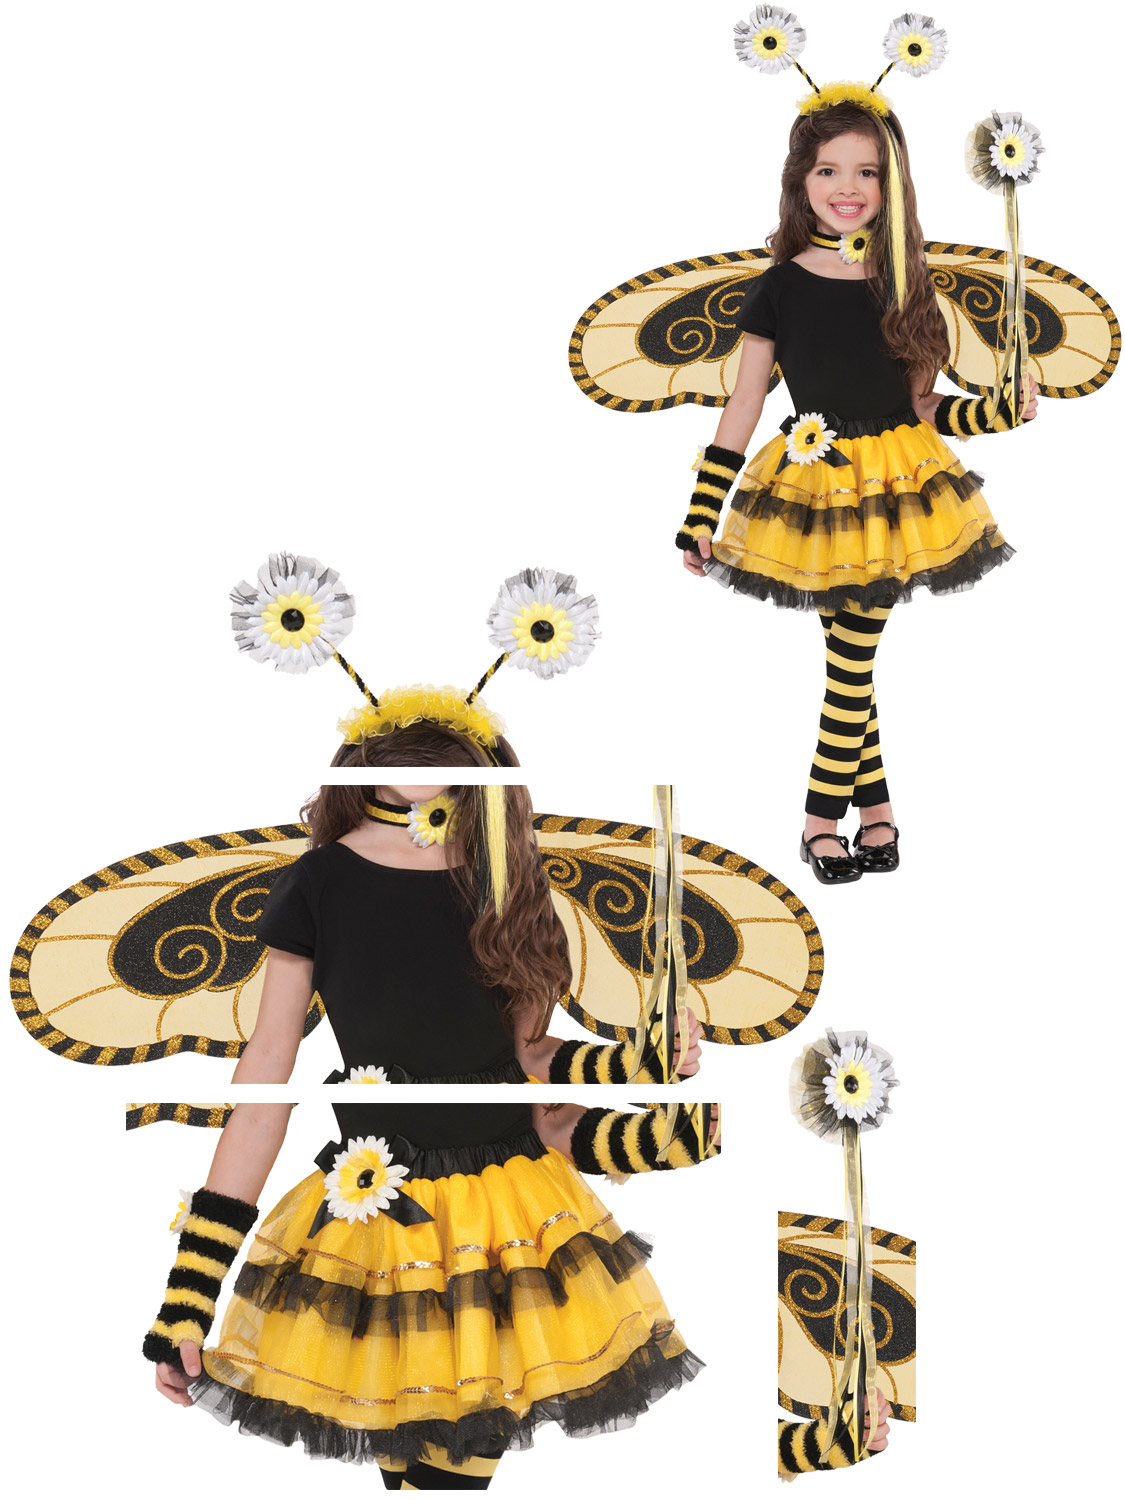 Transform your child into a stunning bumble bee queen with these bumble bee costume accessoriesu2026 Choose from the tutu wings headboppers or wand or put it ...  sc 1 st  eBay & Girls Bumble Bee Fairy Costume Childs Tutu Wings Headbopper Wand ...